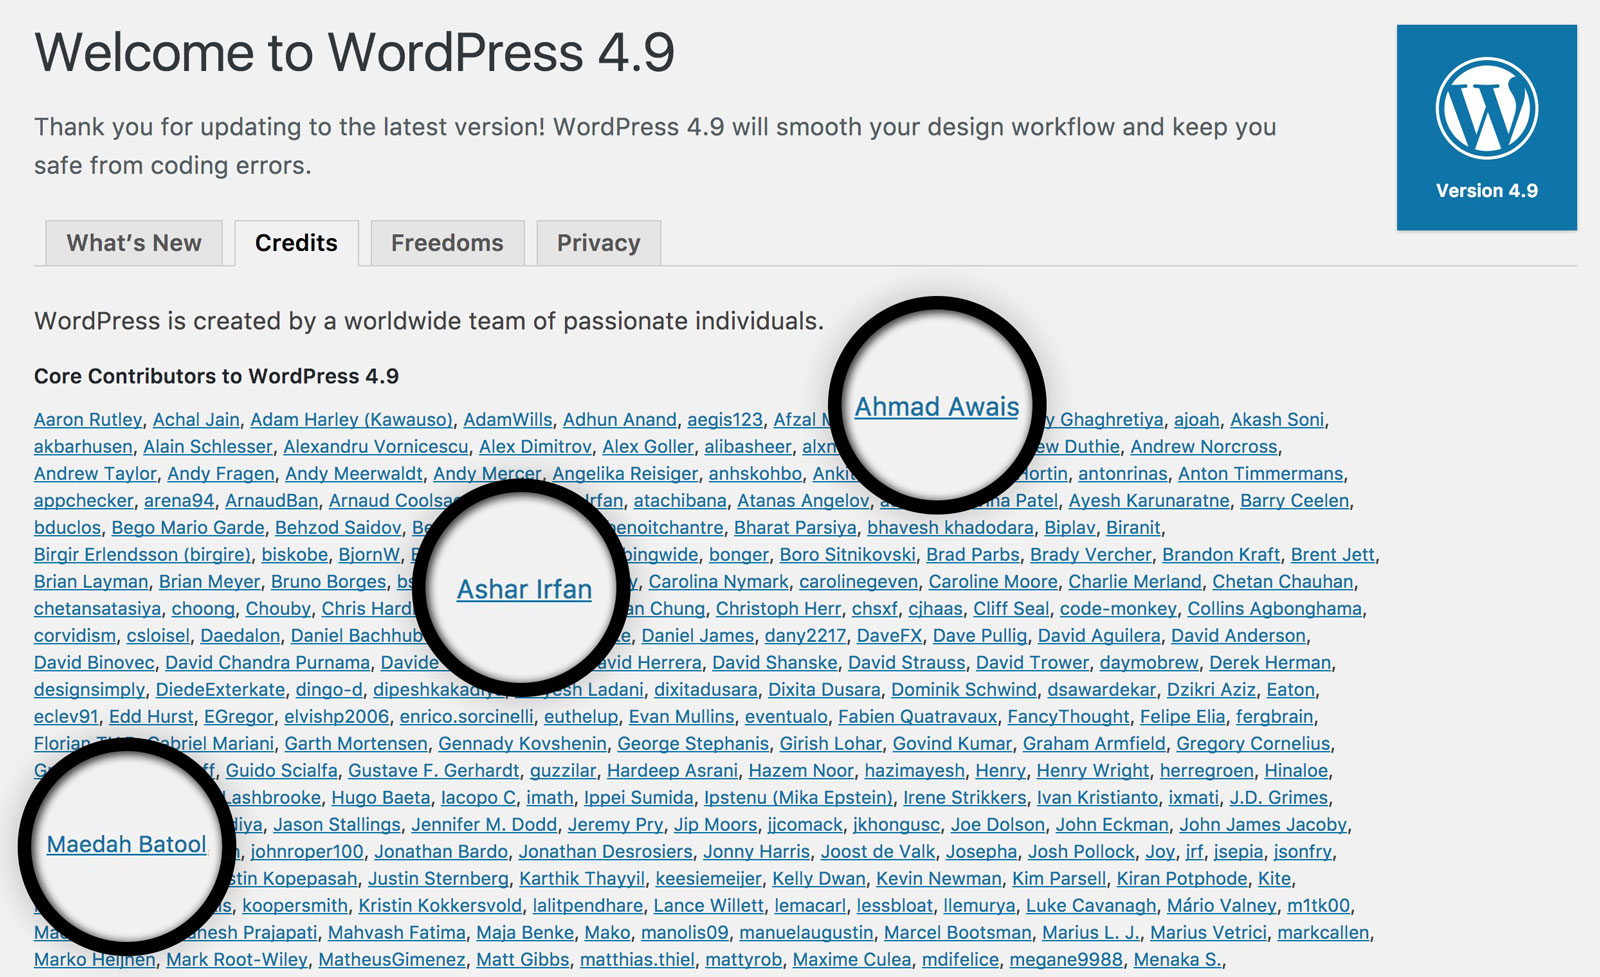 WordPress4.9-Core-Contributors-WPCouple-Ahmad-Awais-Maedah-Batool-Ashar-Irfan-large